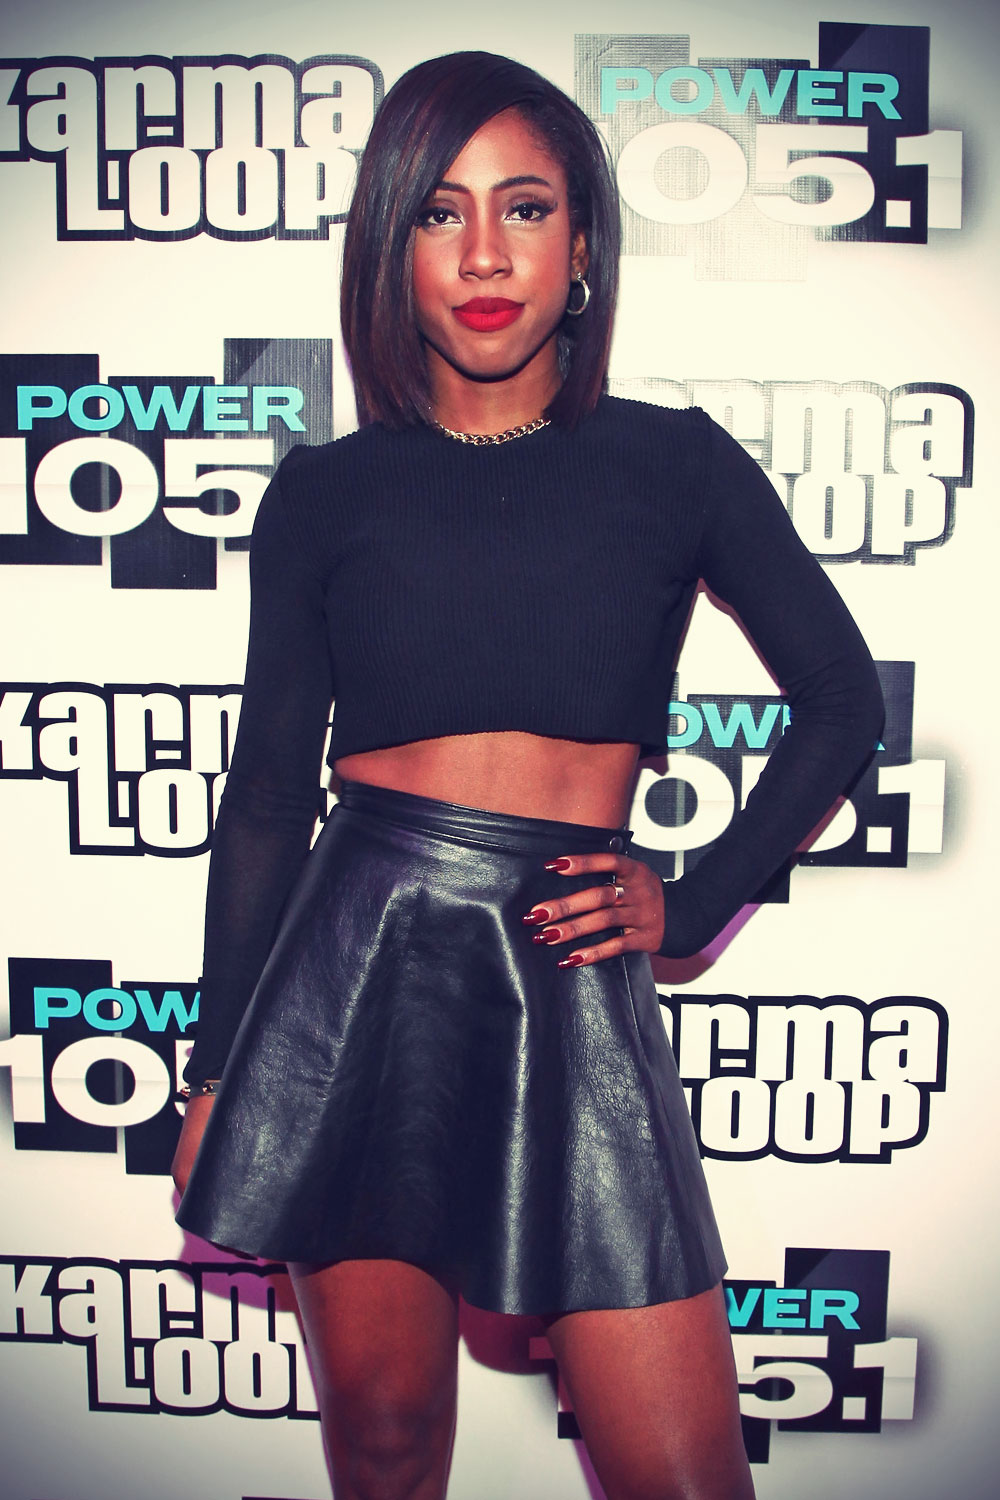 Sevyn Streeter performing at Power 105.1's Powerhouse 2013